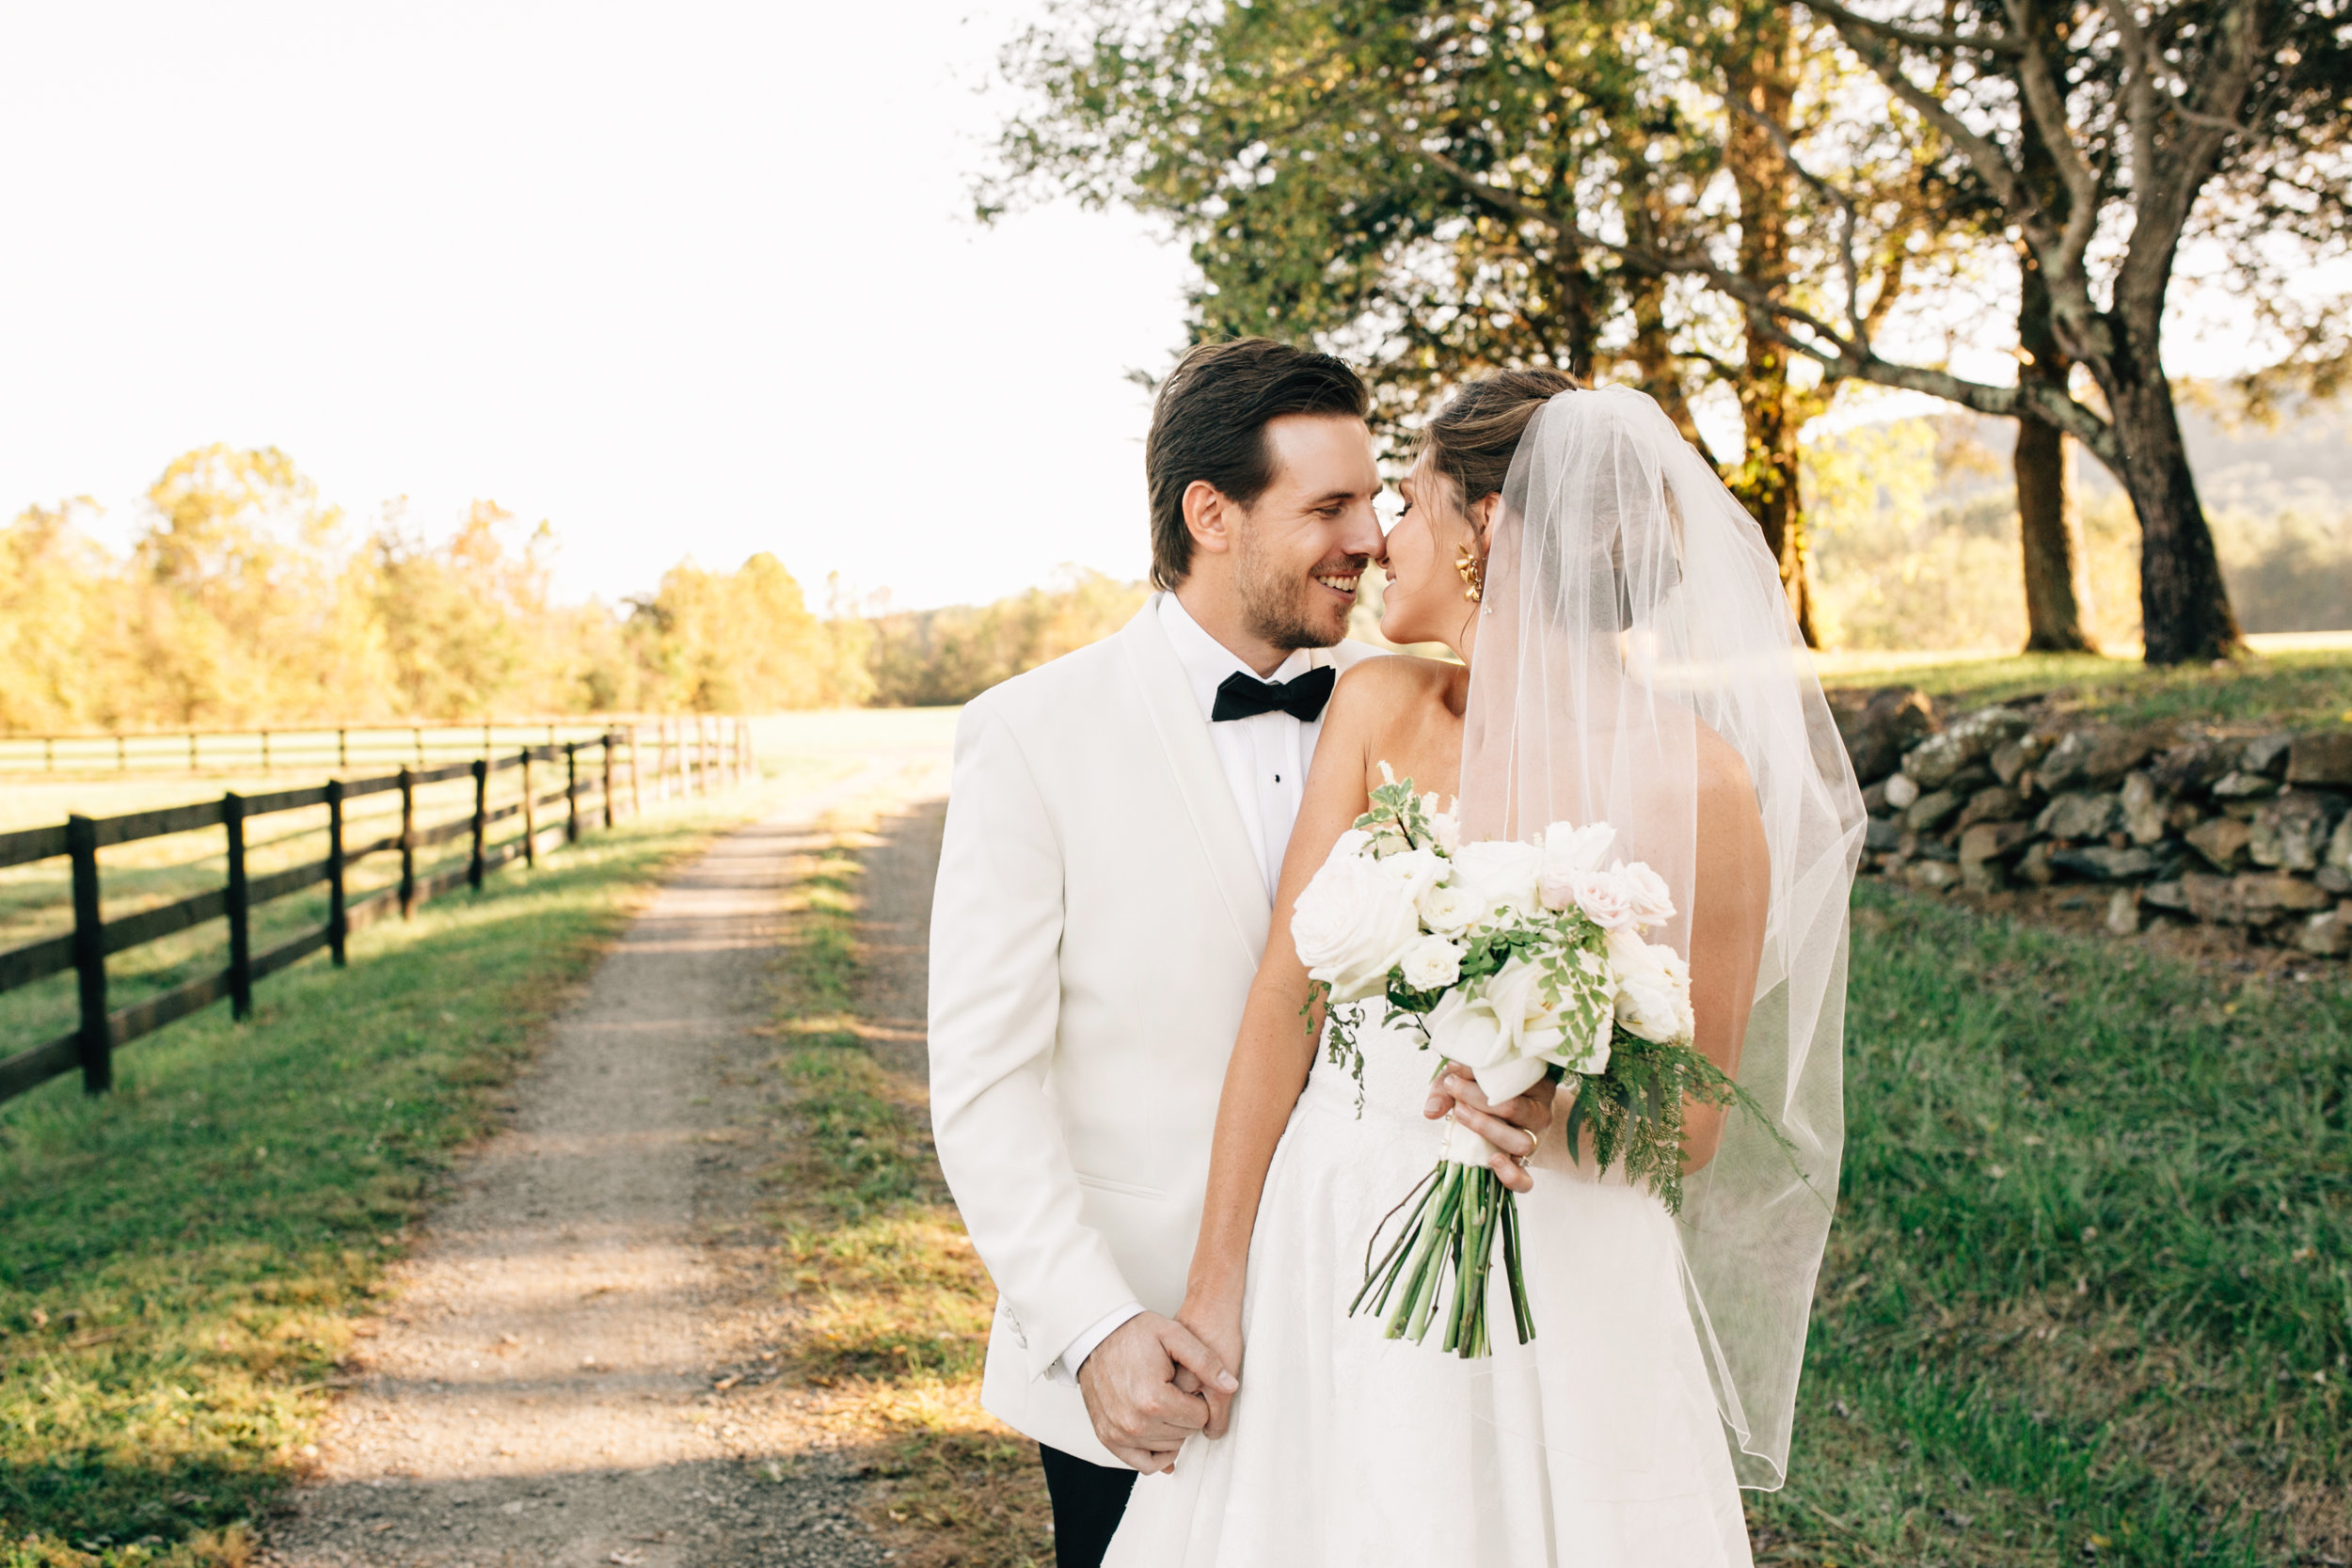 KatieStoopsPhotography-charlottesville wedding-farm wedding23.jpg